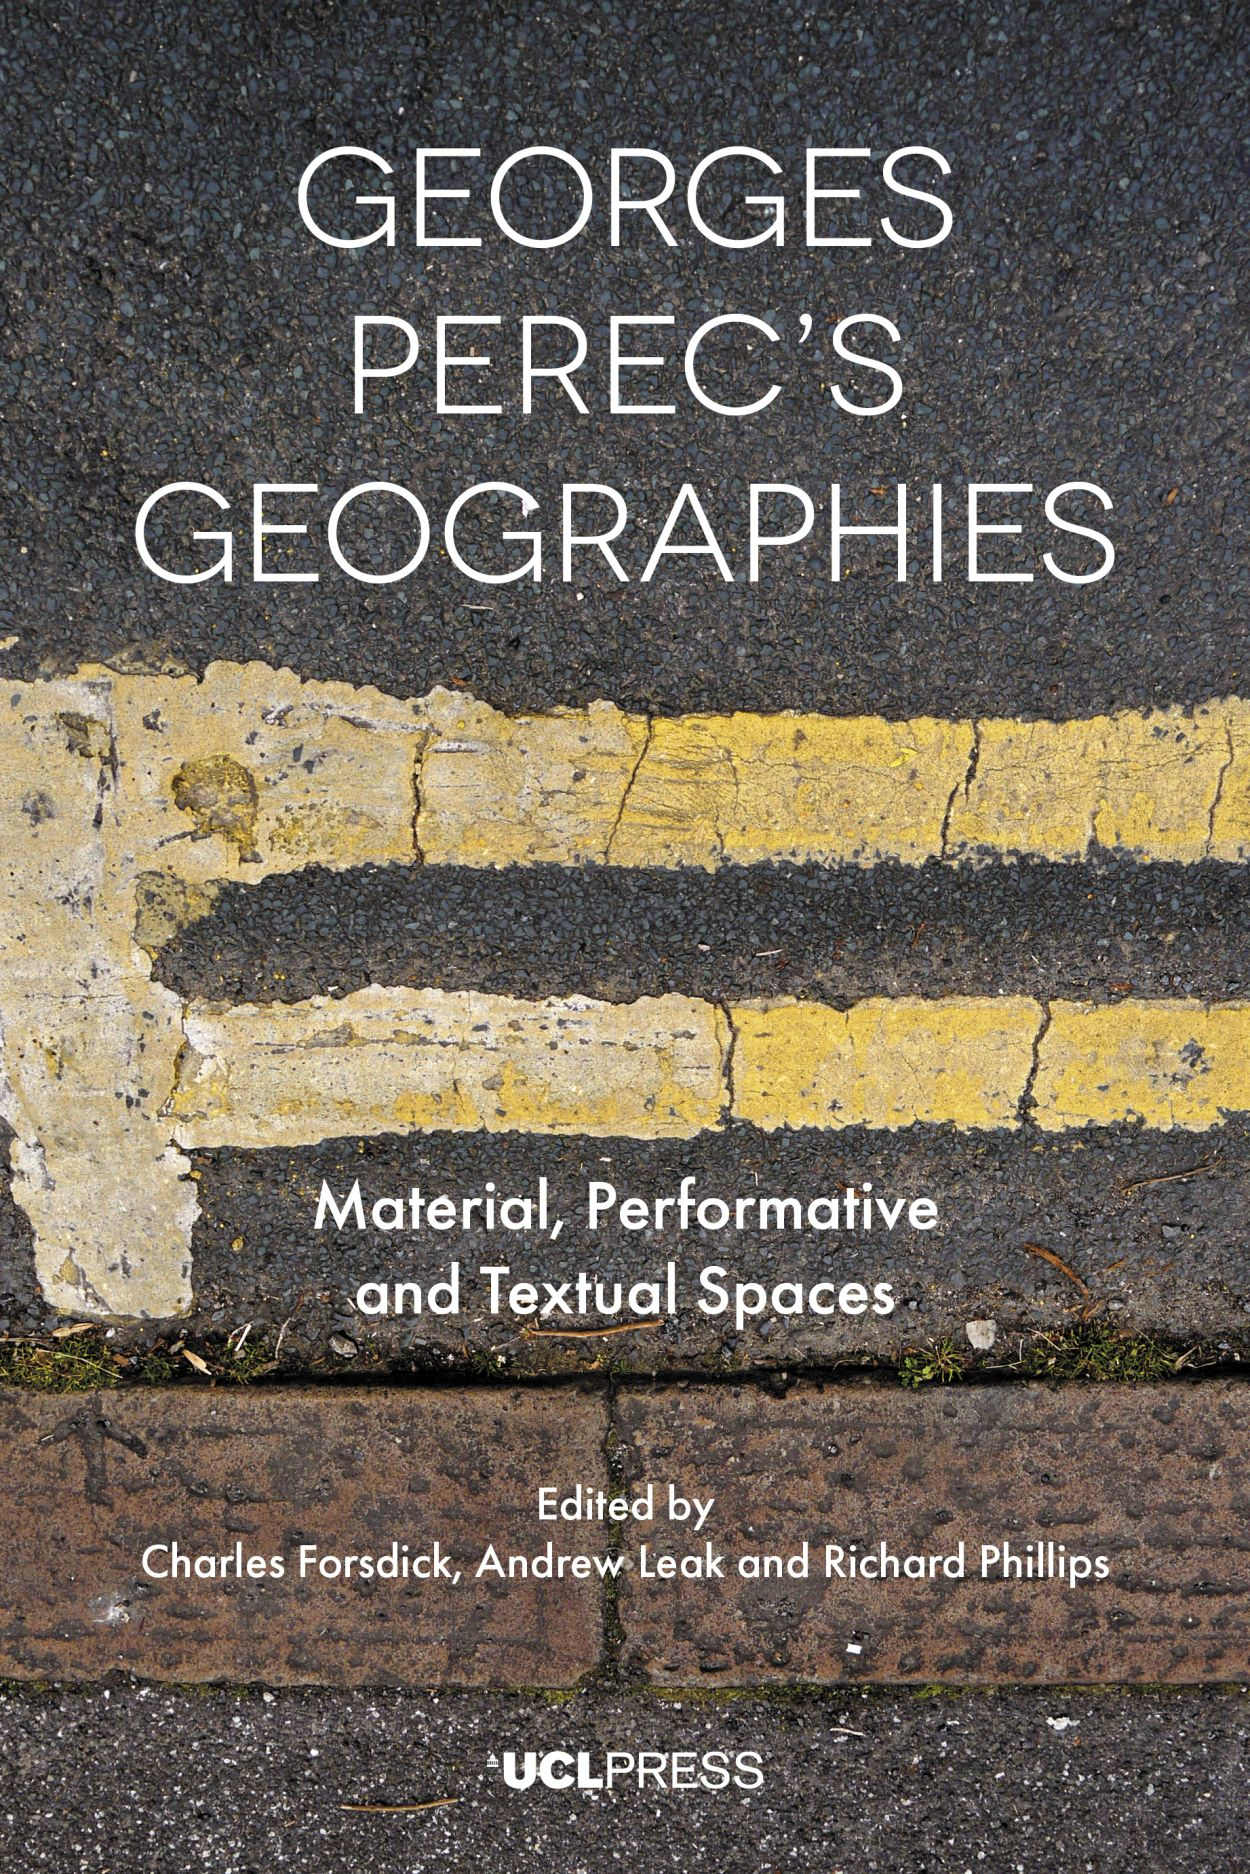 Georges Perec's Geographies: Material, Performative and Textual Spaces